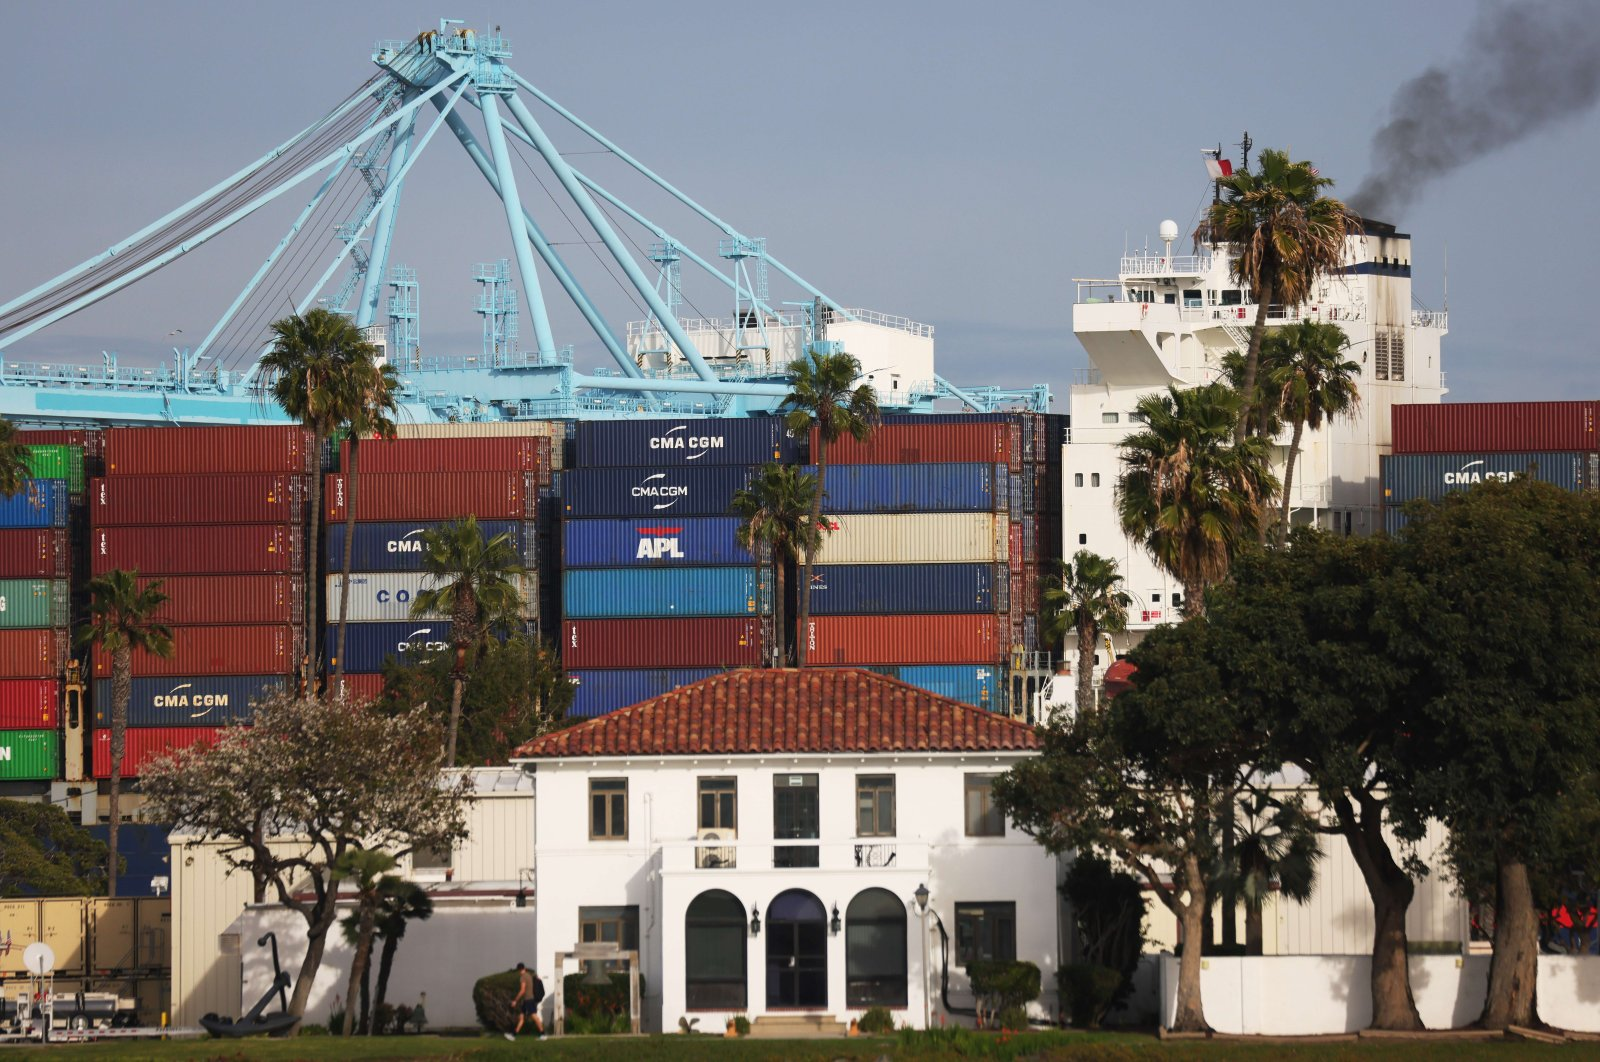 A container ship enters the Port of Los Angeles in San Pedro, California, U.S., Feb. 1, 2021. (AFP Photo)